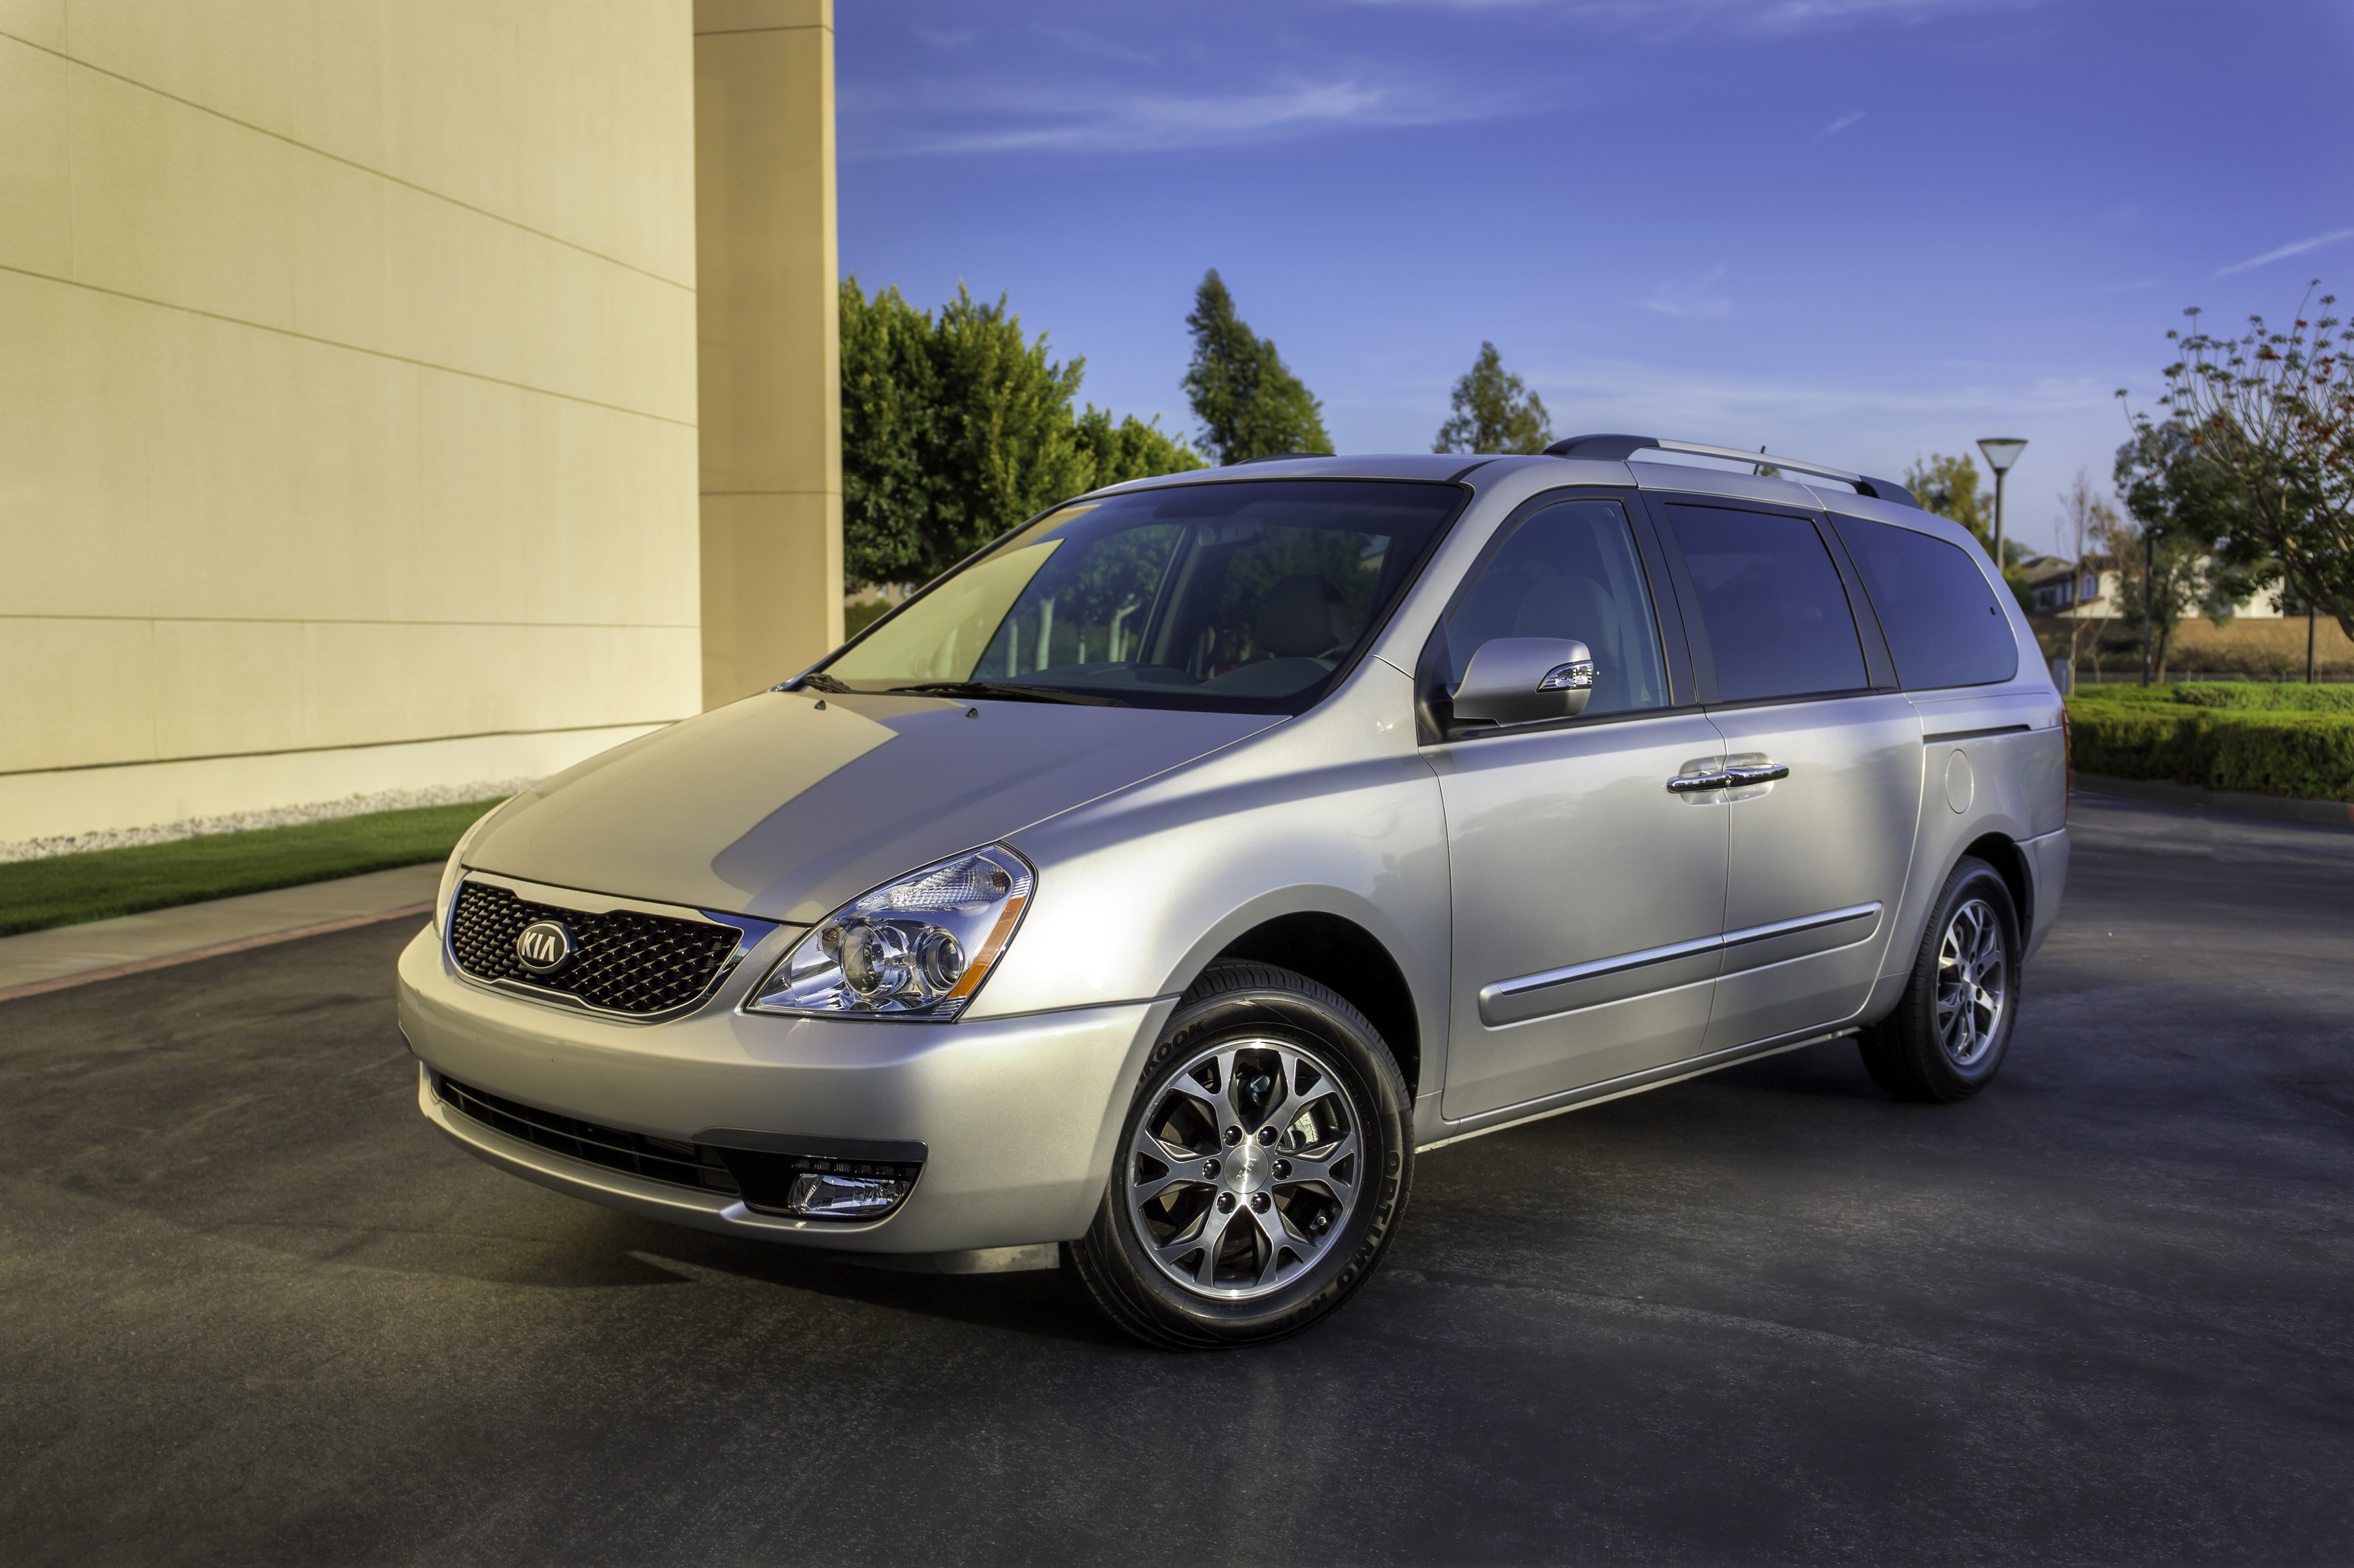 Kia Sedona Minivan Returns For 2014 Whats Changed Wont Start